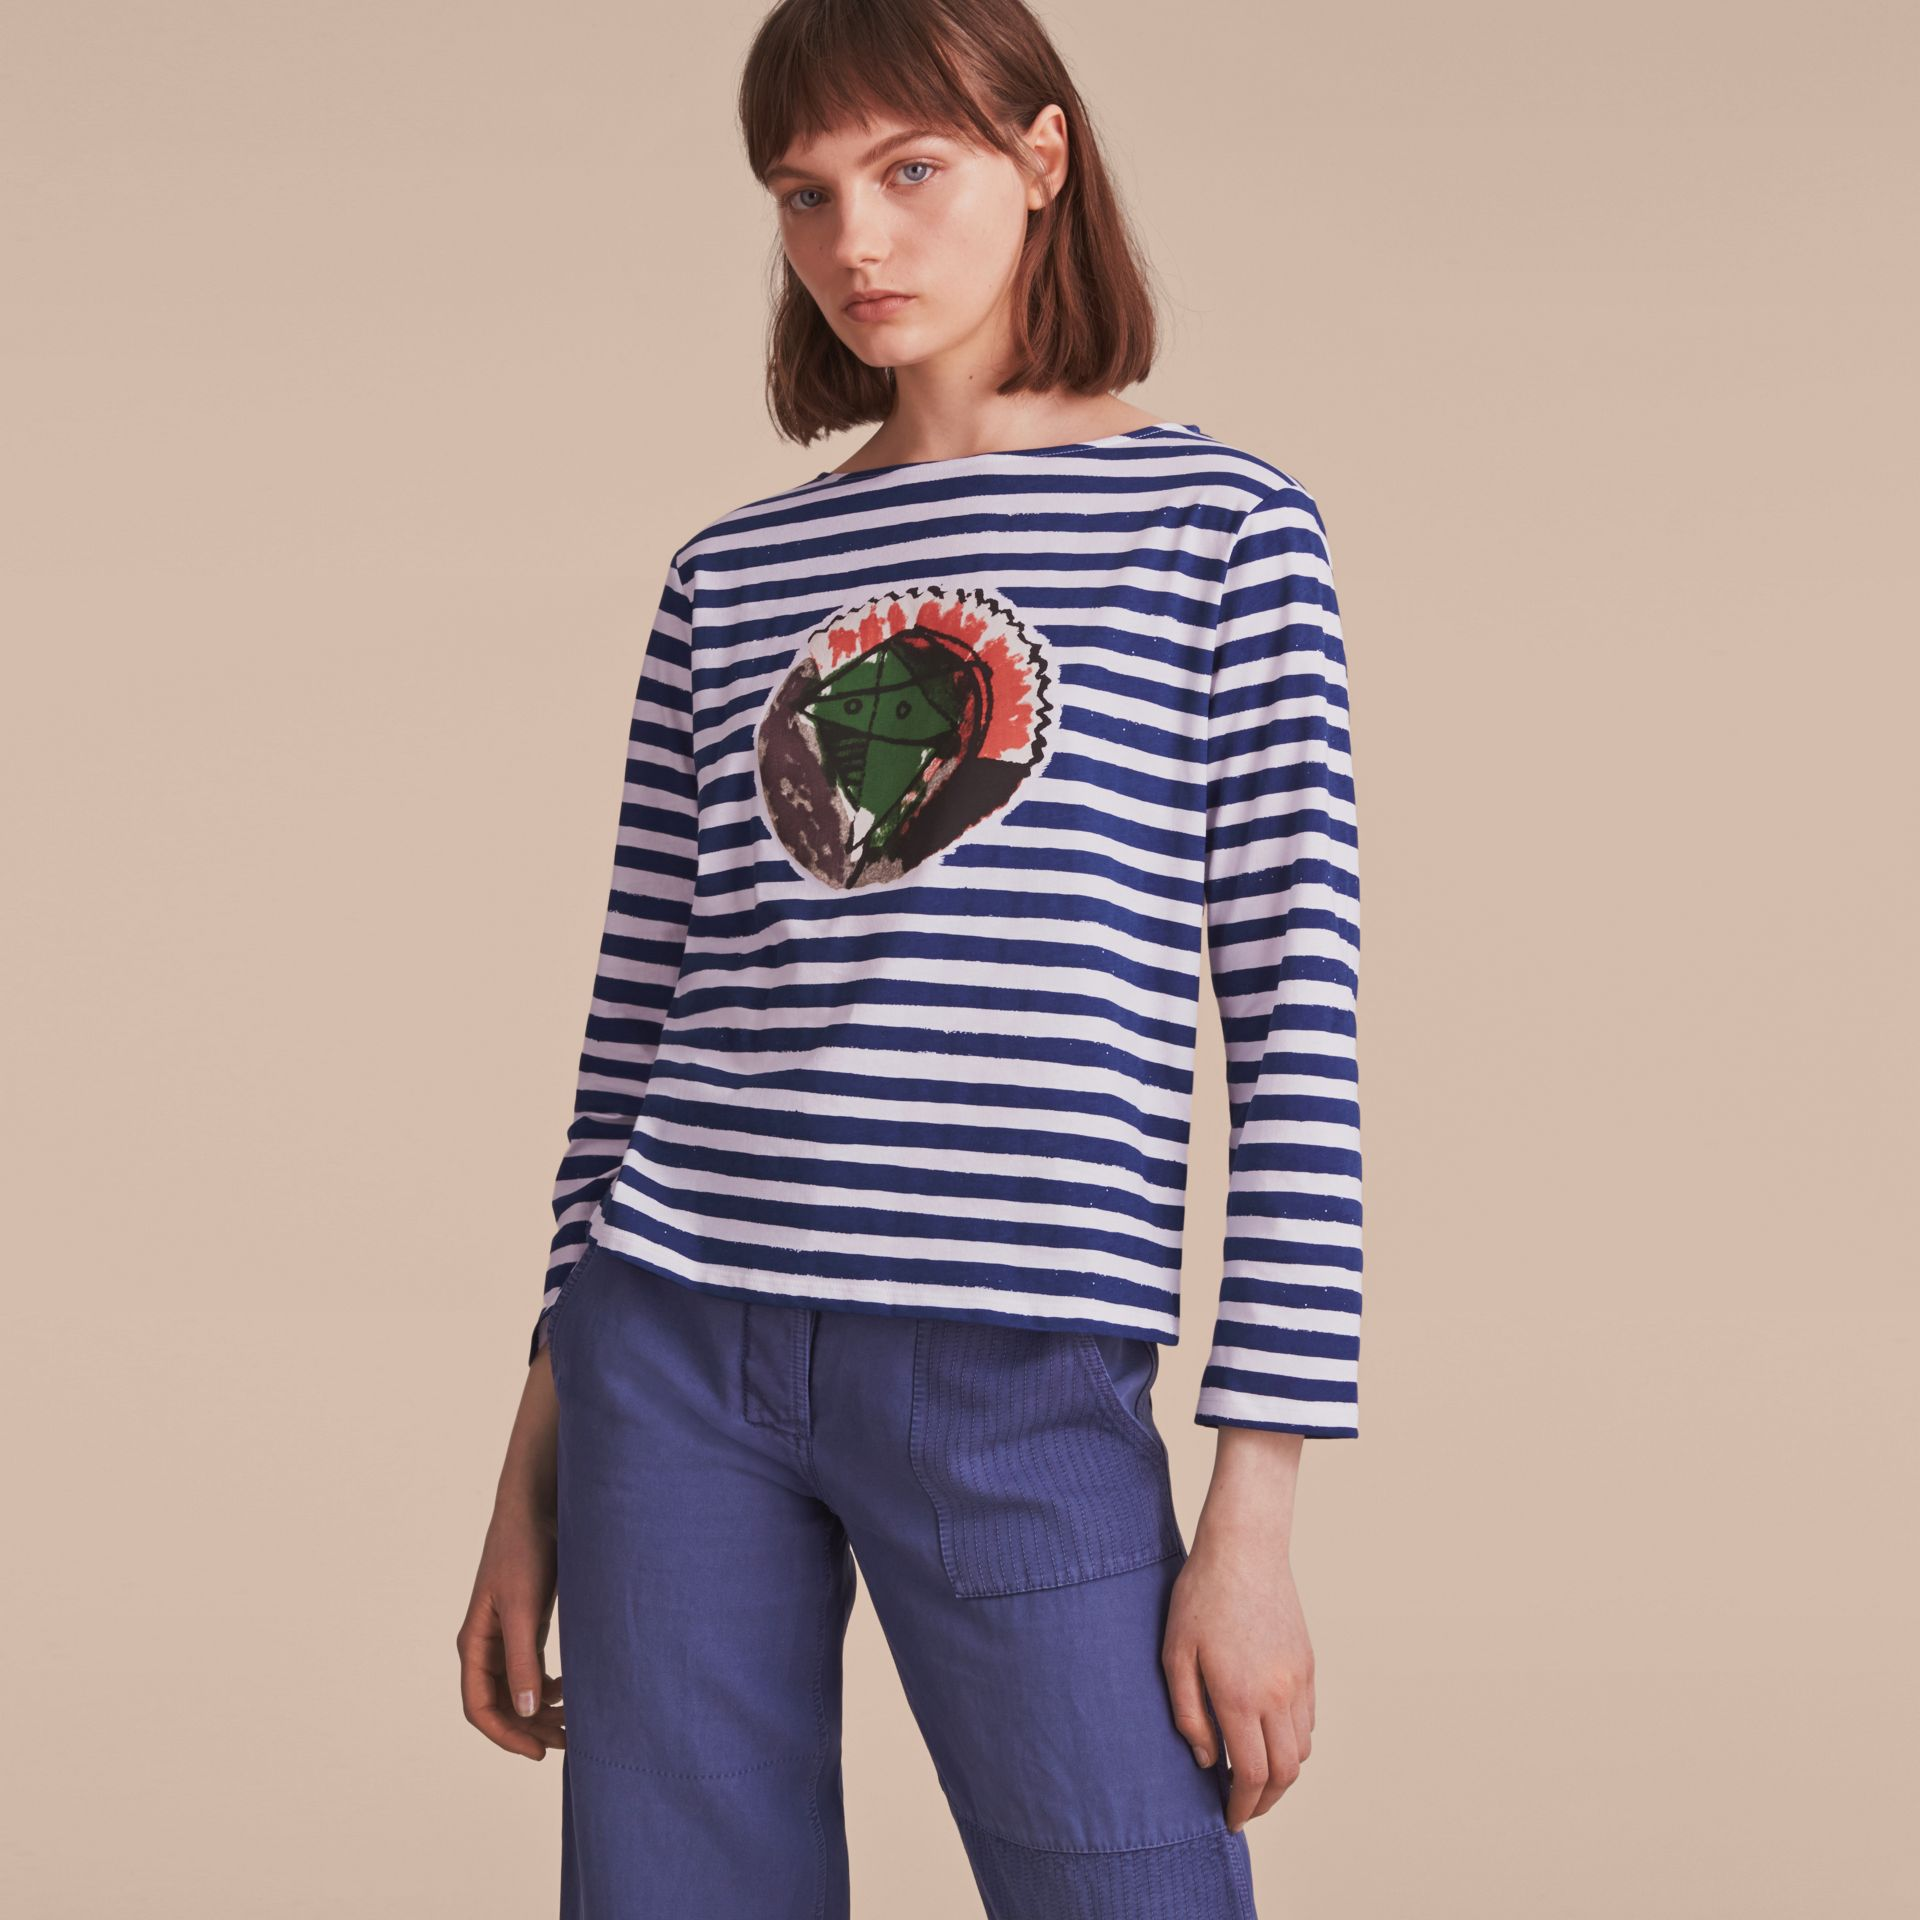 Pallas Heads Print Breton Stripe Jersey Top in Ink Blue/white - Women | Burberry - gallery image 6